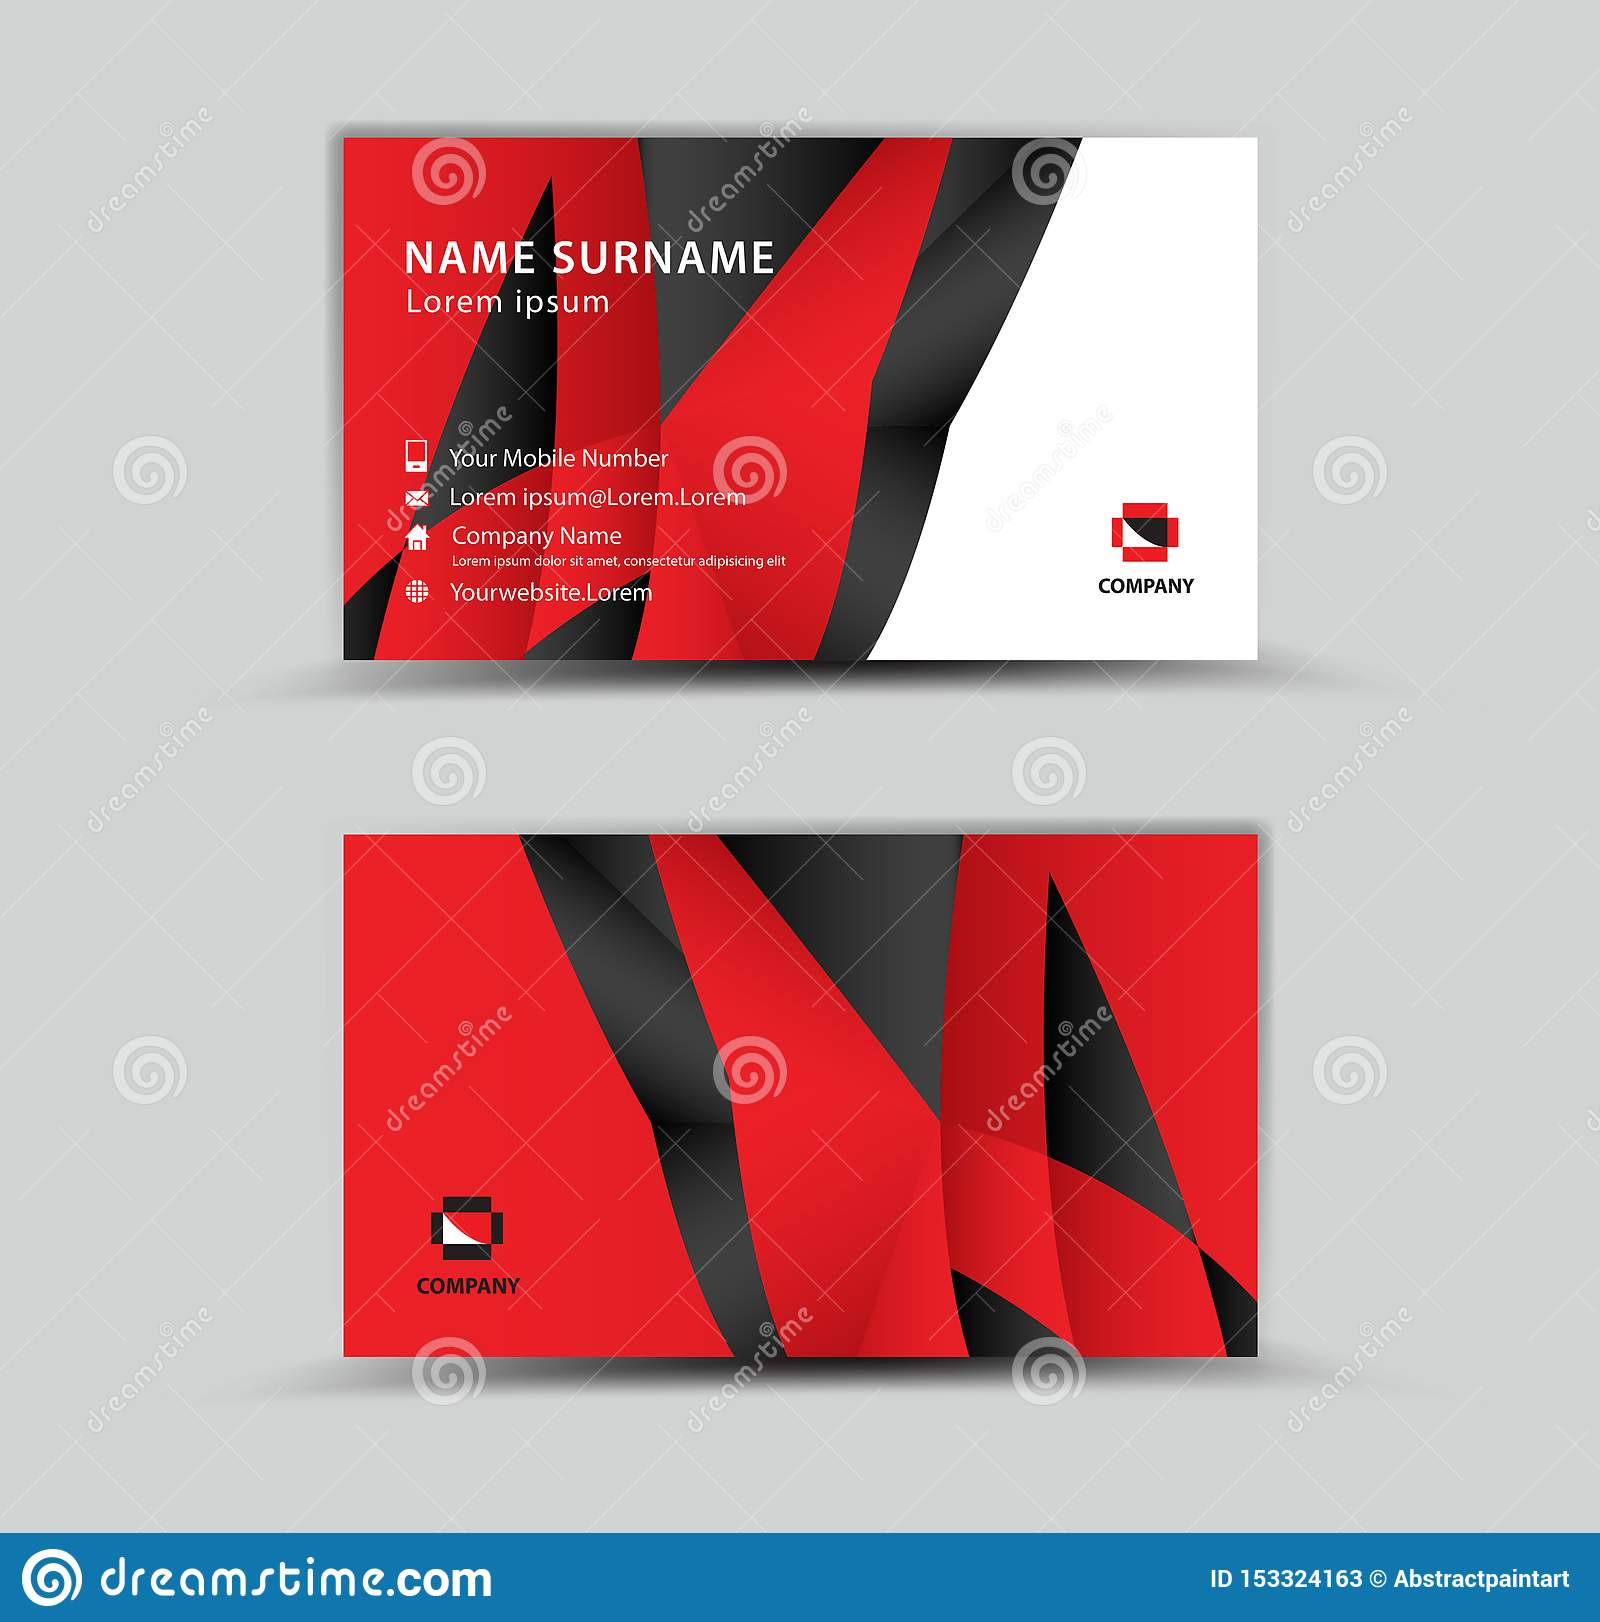 Business Card Vector template, Creative idea modern concept, red polygon background